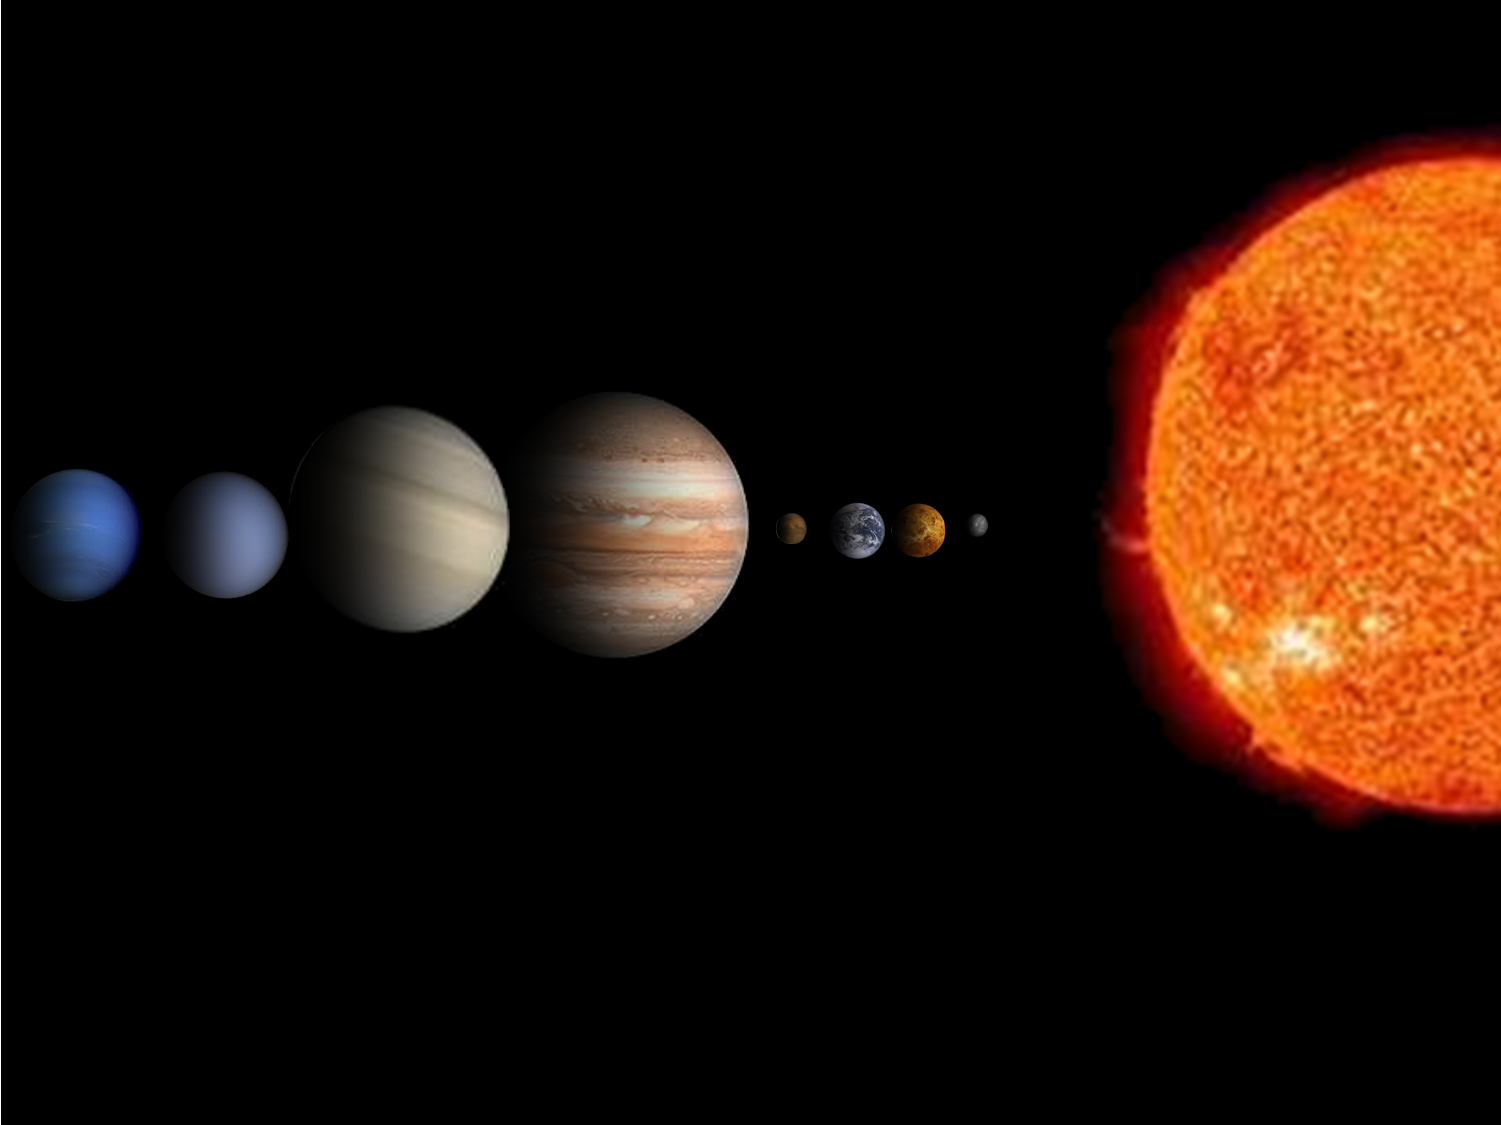 our solar system planets in order with no pluto - photo #6